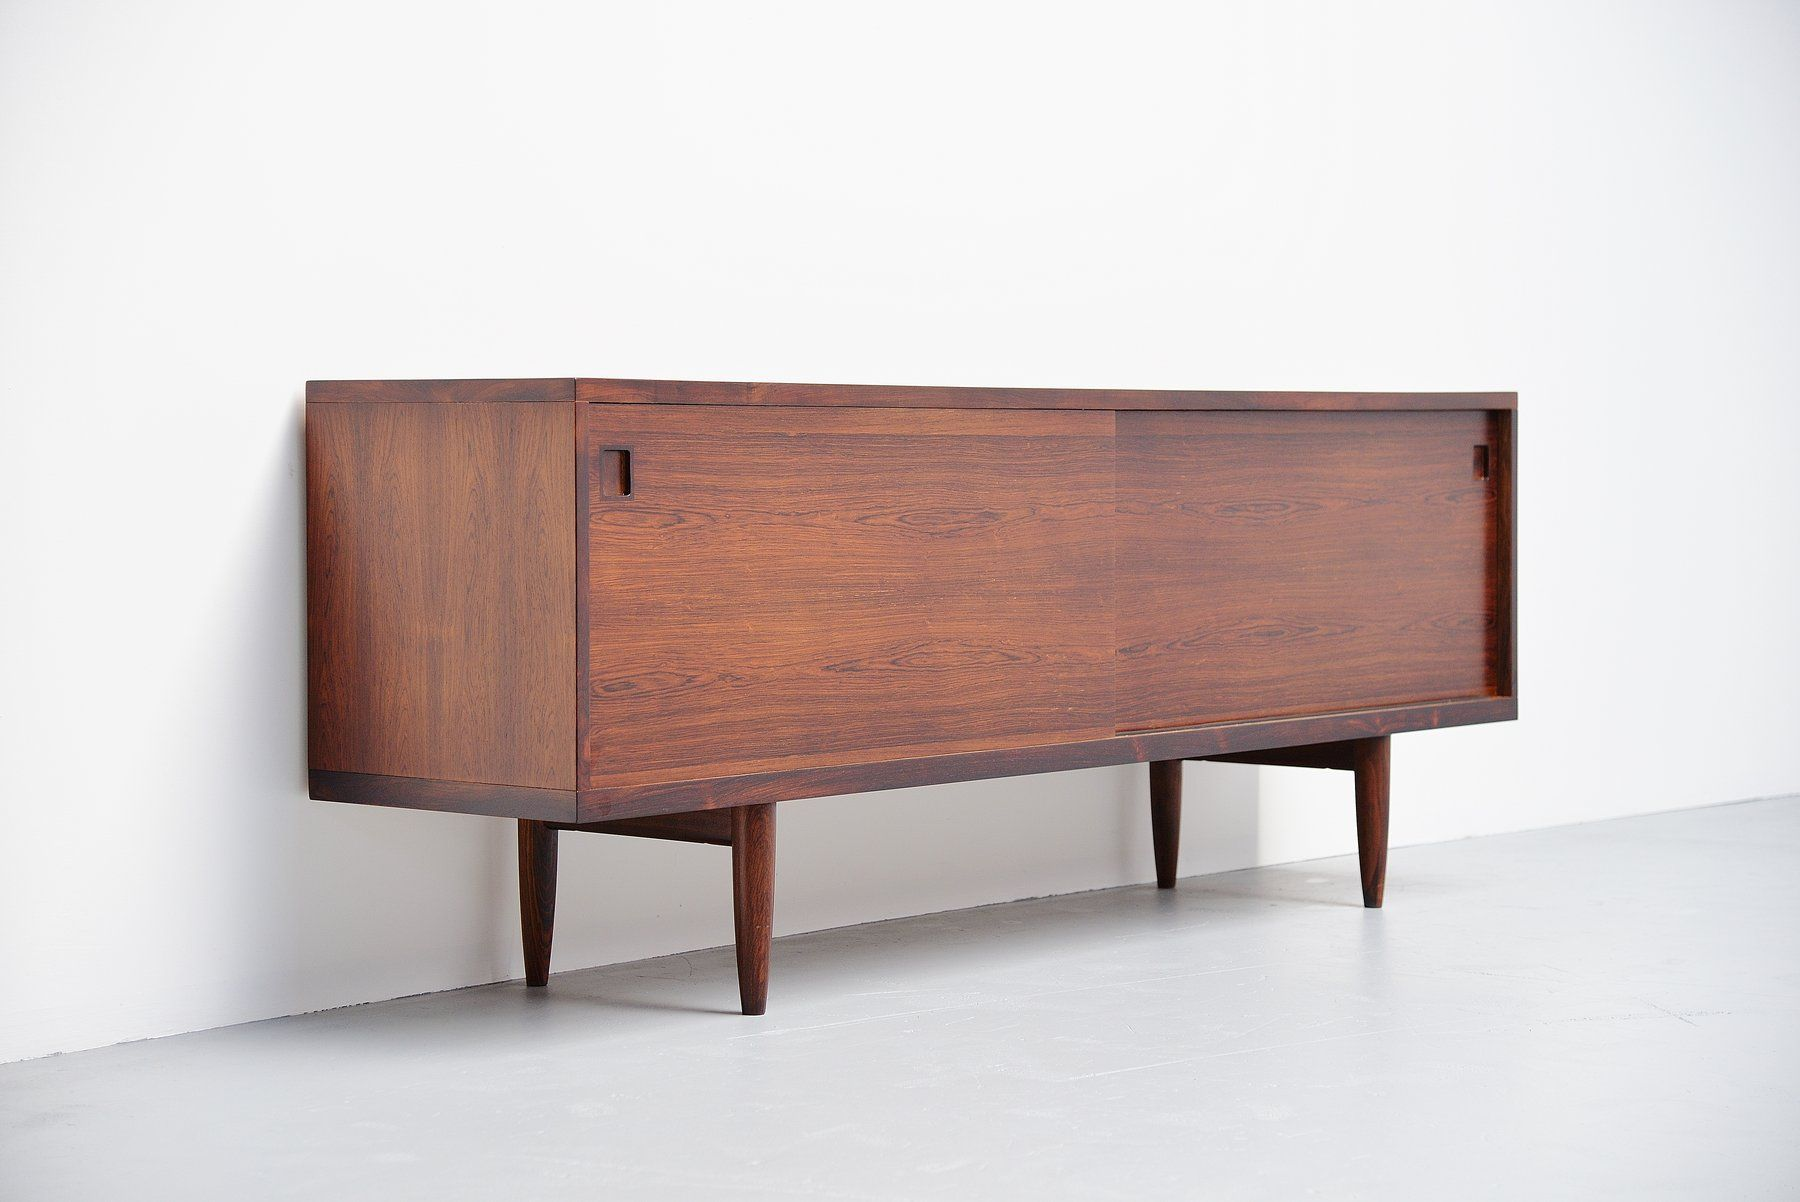 Nice For Sale on Superb quality sideboard designed by Niels Otto Moller produced by J M ller M belfabrik Denmark This high quality made sideboard is made